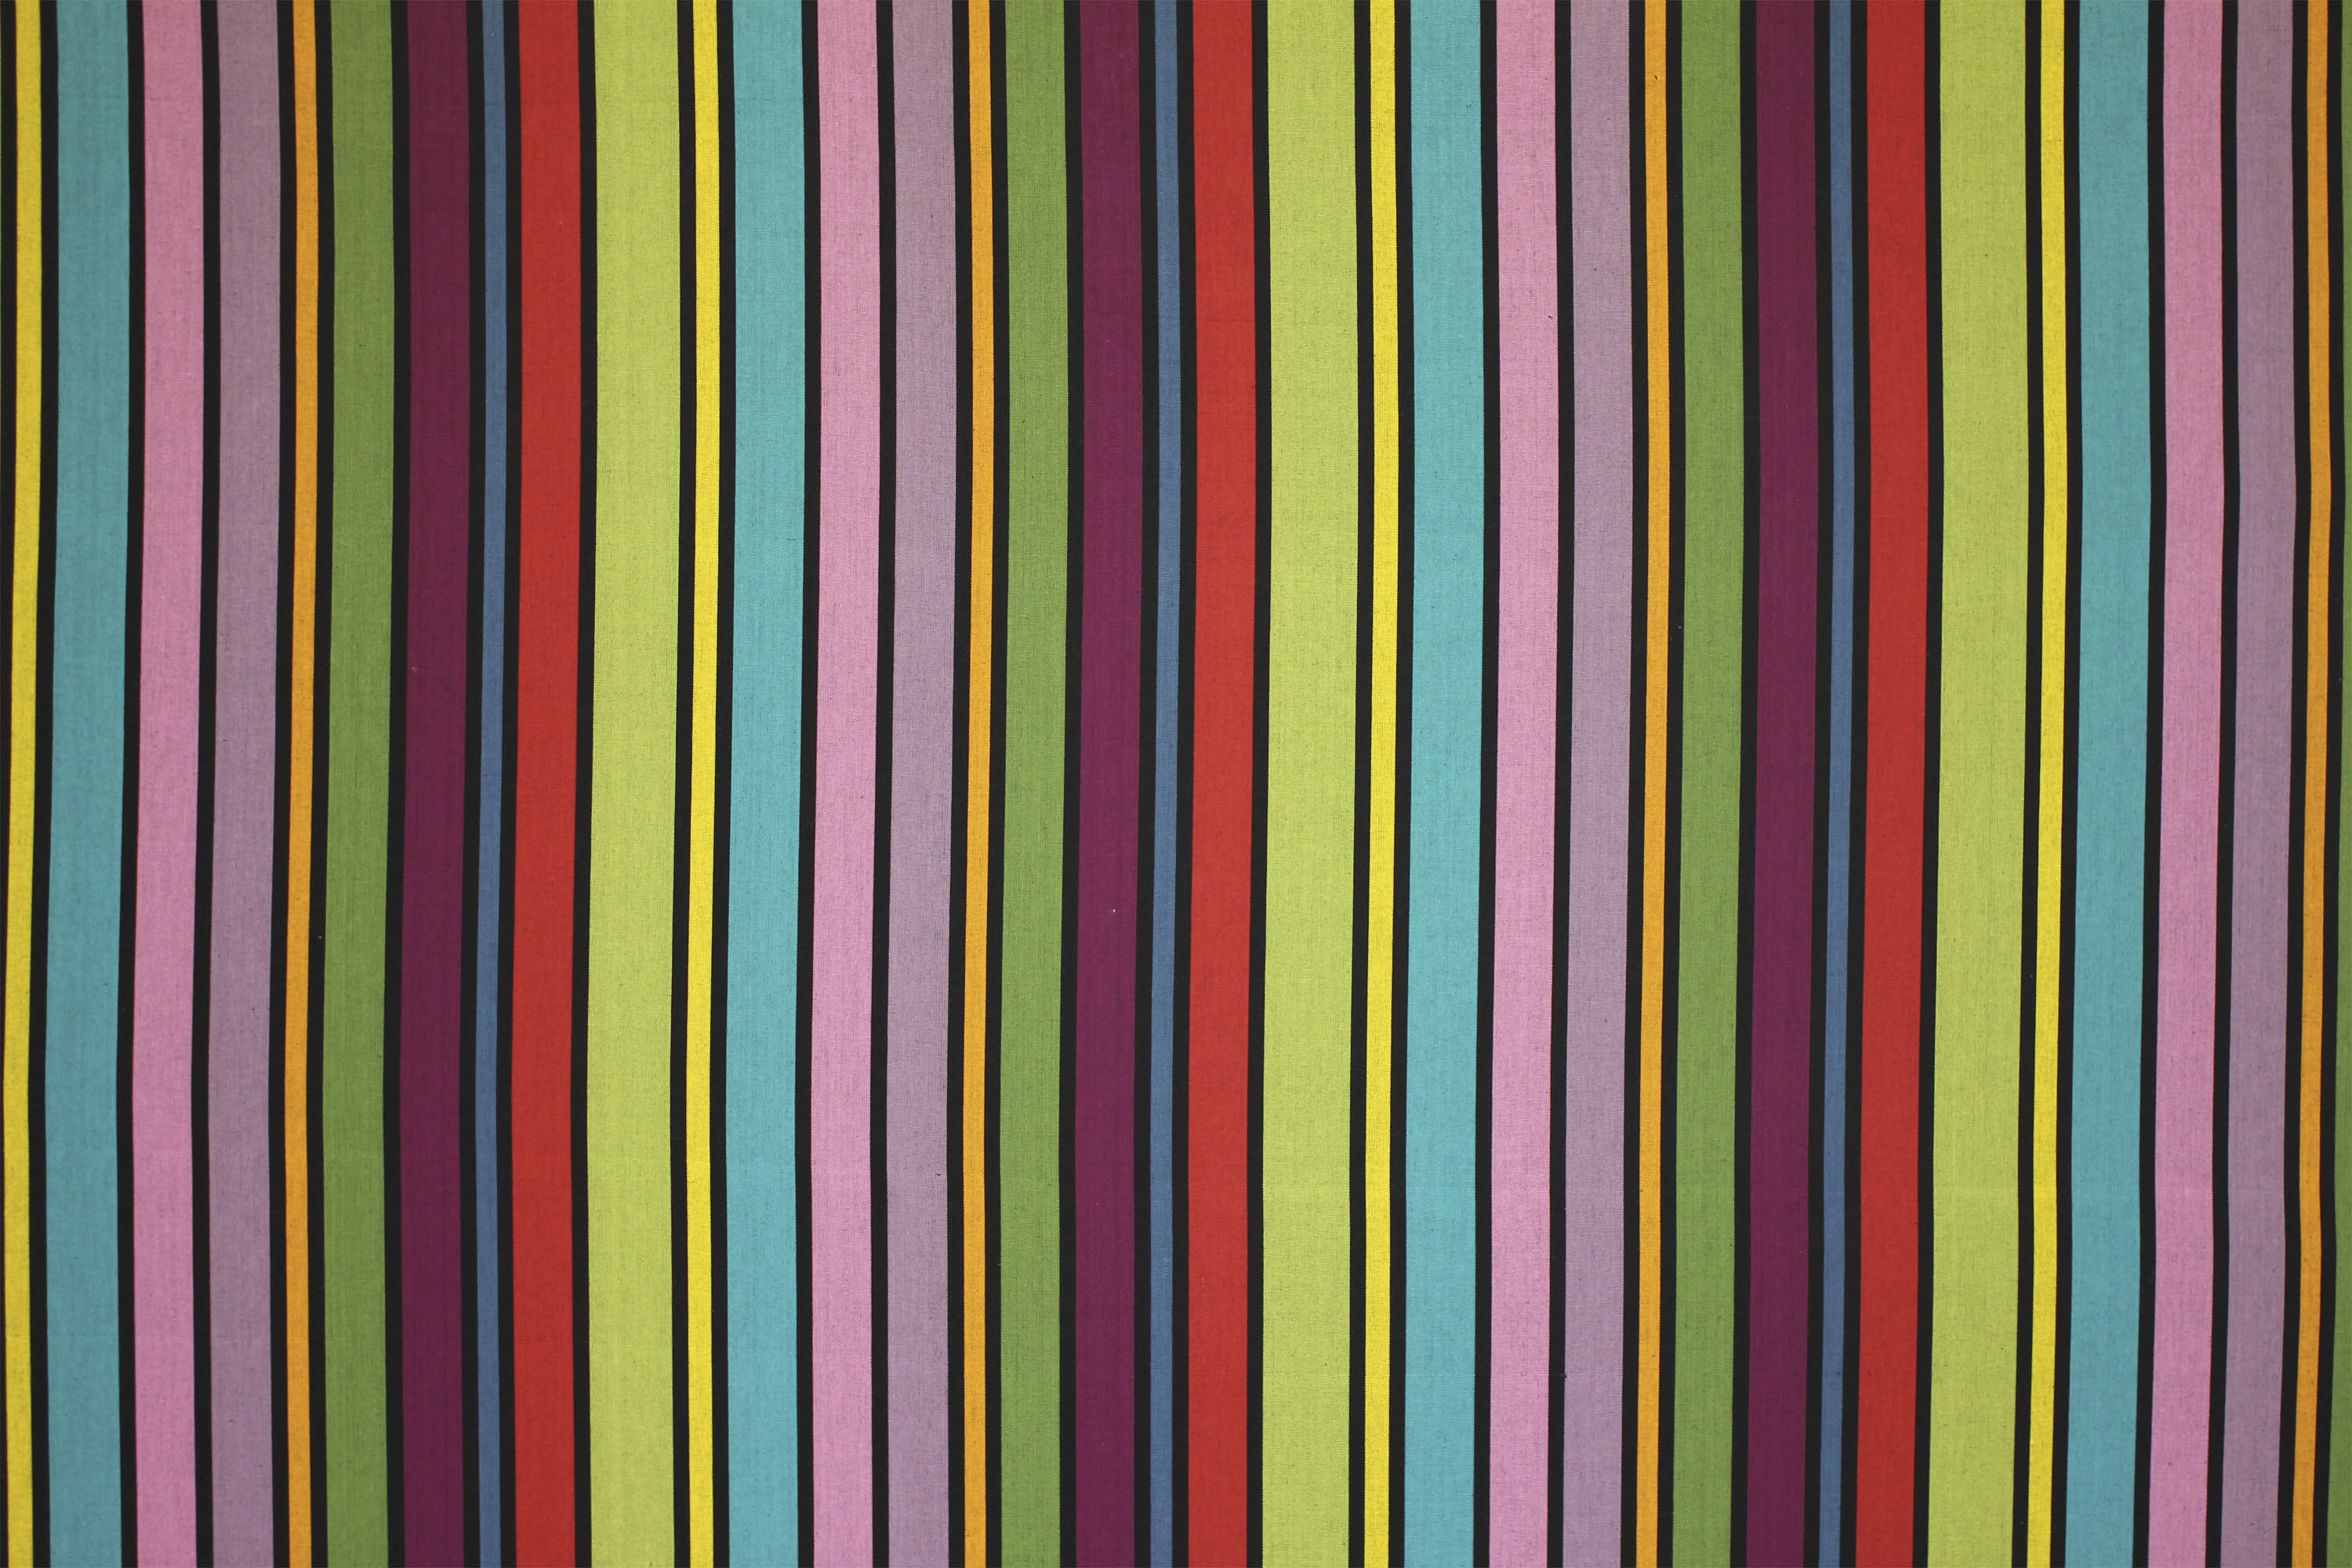 Black Striped Fabrics | Stripe Cotton Fabrics | Striped Curtain Fabrics | Upholstery Fabrics  Dominoes Stripes